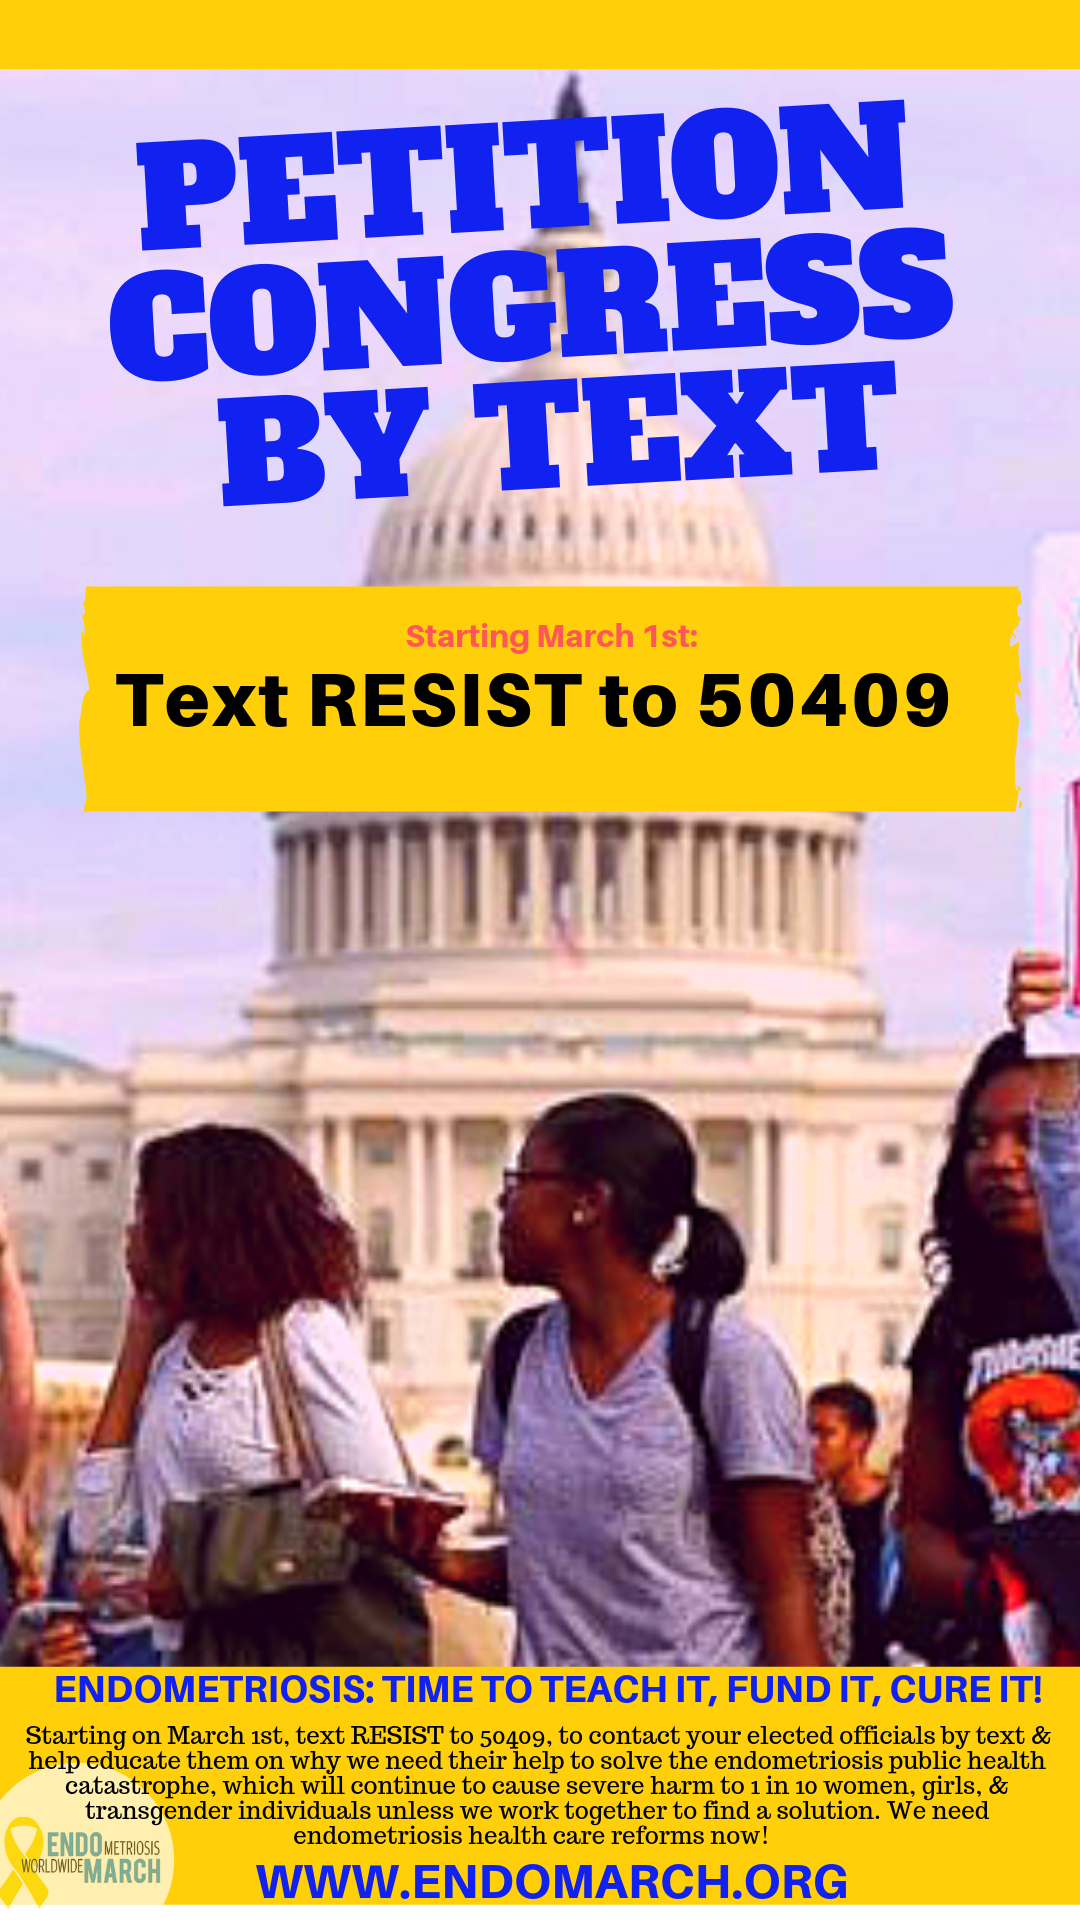 "Text RESIST to 50409 - Text RESIST to 50409 to participate in the first-ever Petition Congress by Text campaign that will allow you to contact your district's U.S. Representative & U.S. Senators on social media or by email, all through a convenient text-based platform. Our messages can include educational information on why we need the help of our nation's legislators to solve the endometriosis public health catastrophe, which will continue to cause severe harm to 1 in 10 women, girls, and transgender individuals, unless we work together to find a solution fast.You can copy and paste the template letter shown below (for emails), or for a shorter message for Twitter and other social media, you could use one of our taglines or those from the endometroisis community, such as the popular ""I am #1in10"" campaign from previous years. Here are a few EndoMarch taglines & hashtags we are using for ENDOMARCH 2019:TAGLINESEndometriosis: Time to teach it, fund it, cure it!  HASHTAGS#endo2020#TeachEndoNow!#endomarch2019#EndoTaskForceNow#EndoHealthReformsNow"